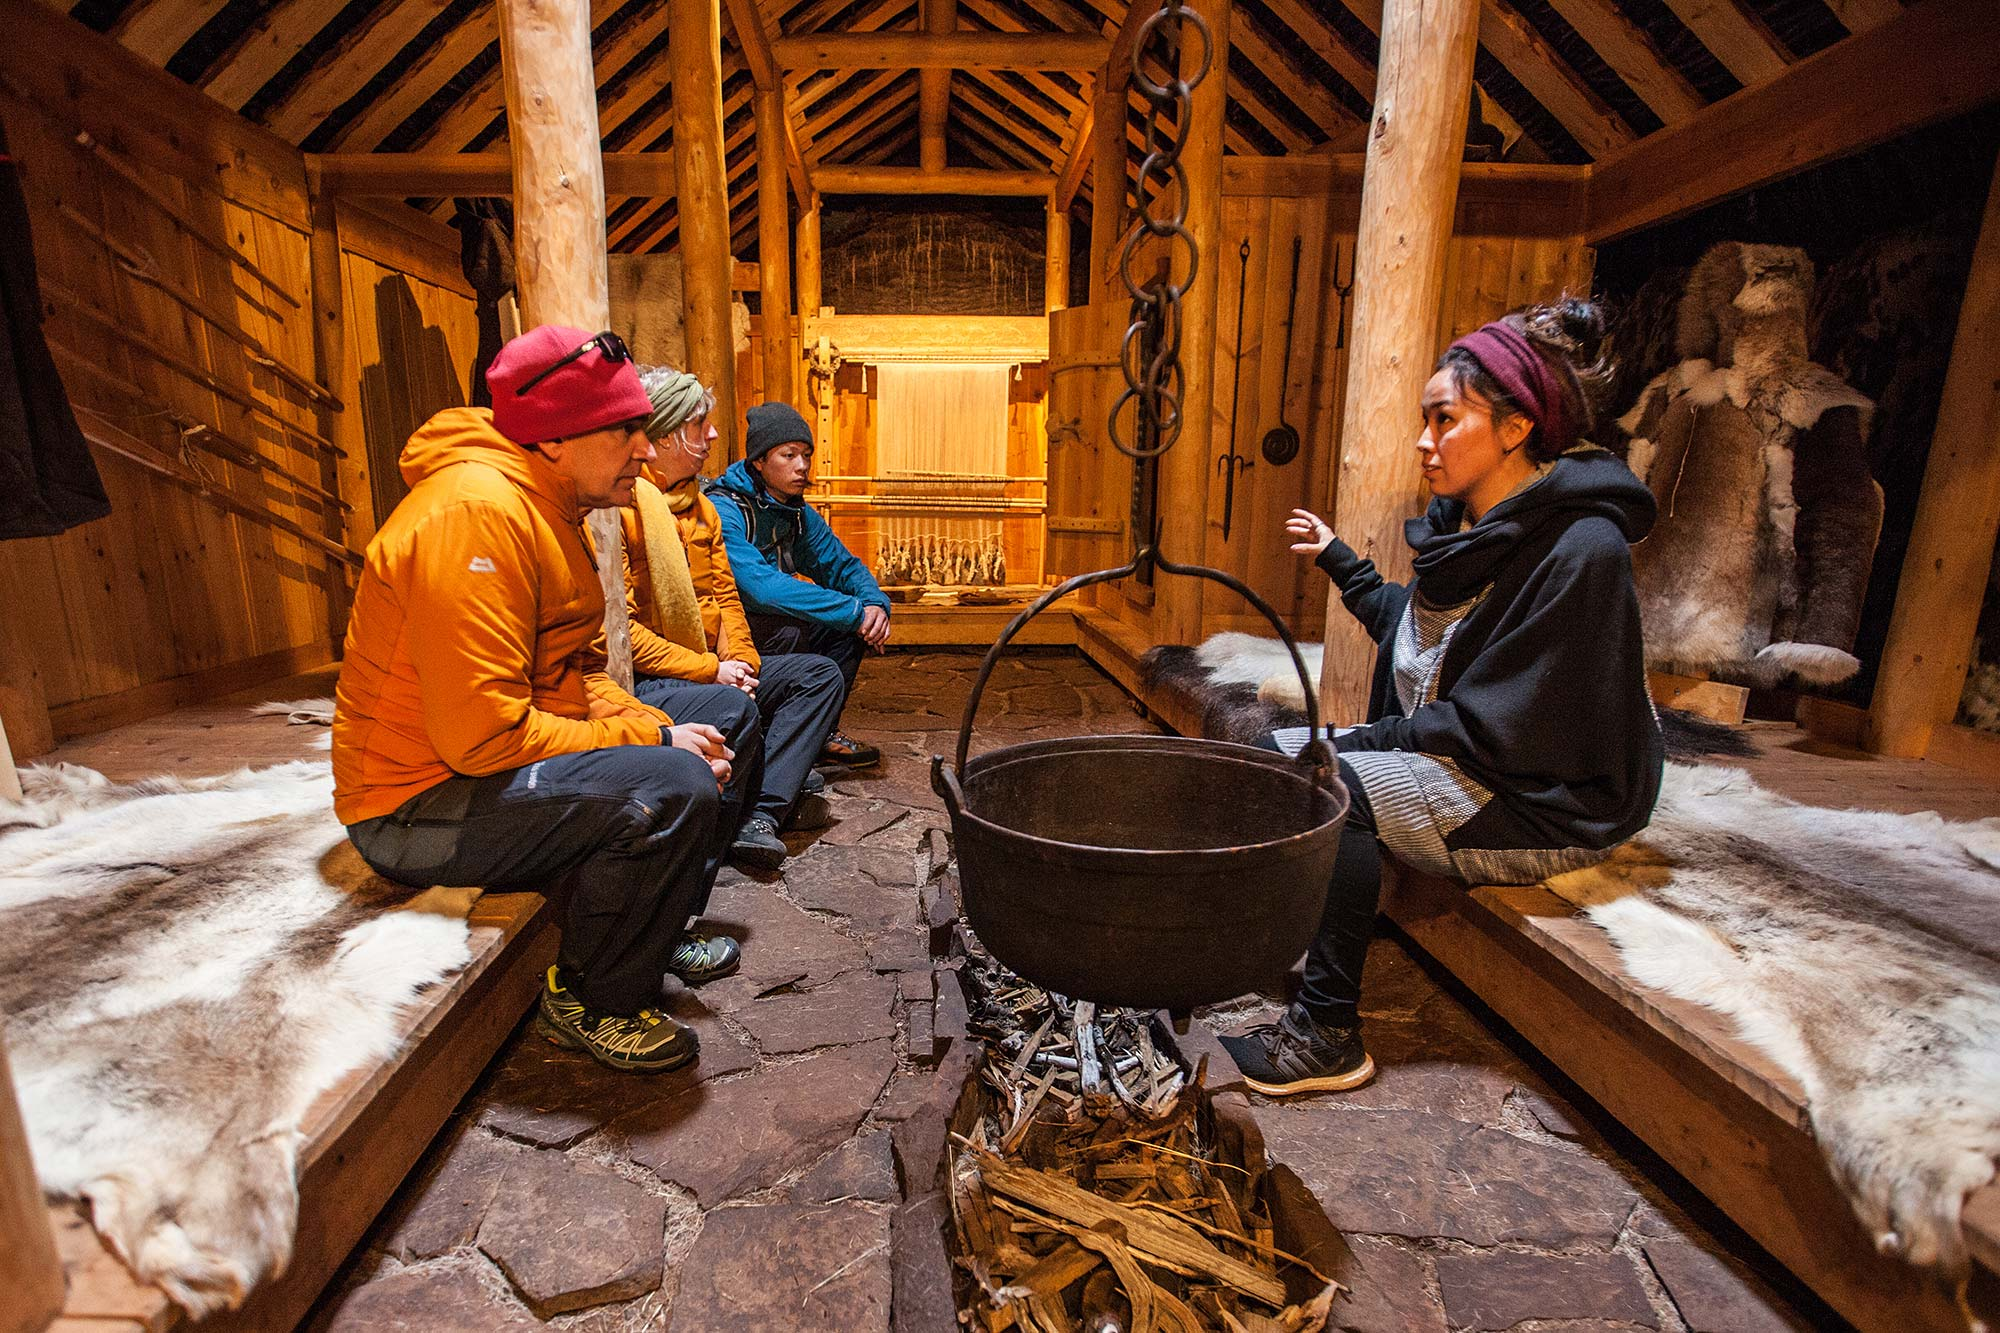 Inside the reconstructed longhouse of Erik the Red in Greenland